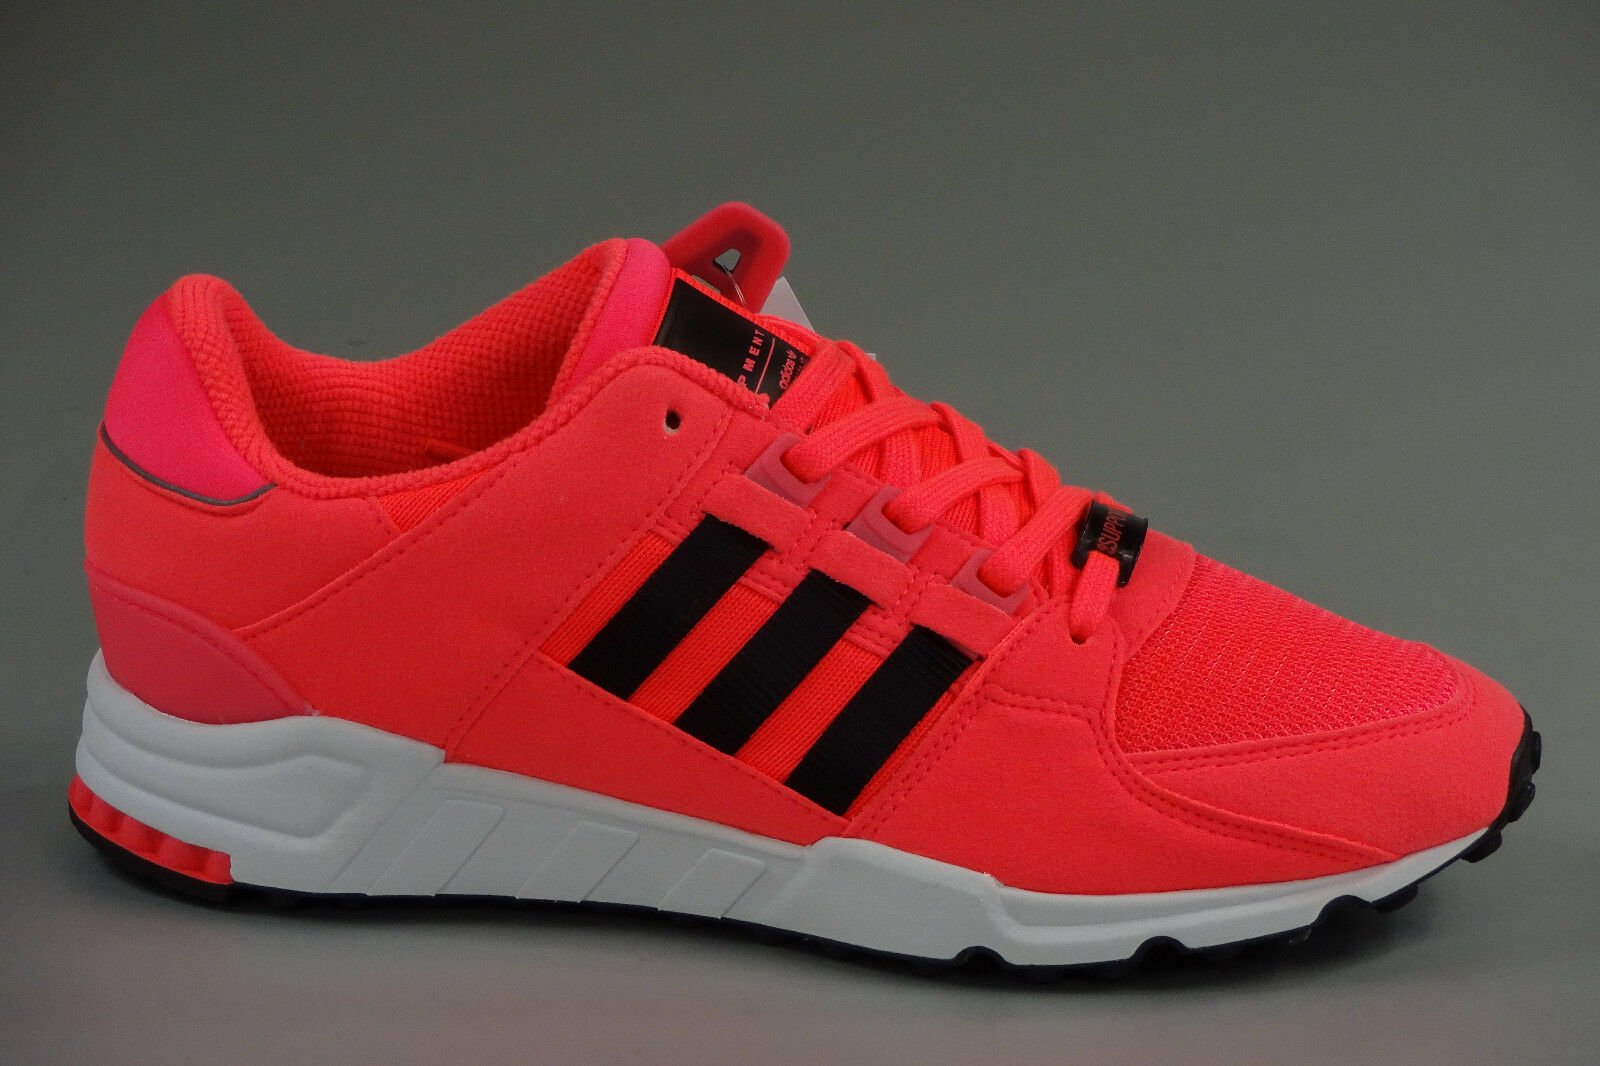 ADIDAS Running ORIGINALS Equipment Bb1321 Support Rf Running ADIDAS Sneaker 93 aabfbb